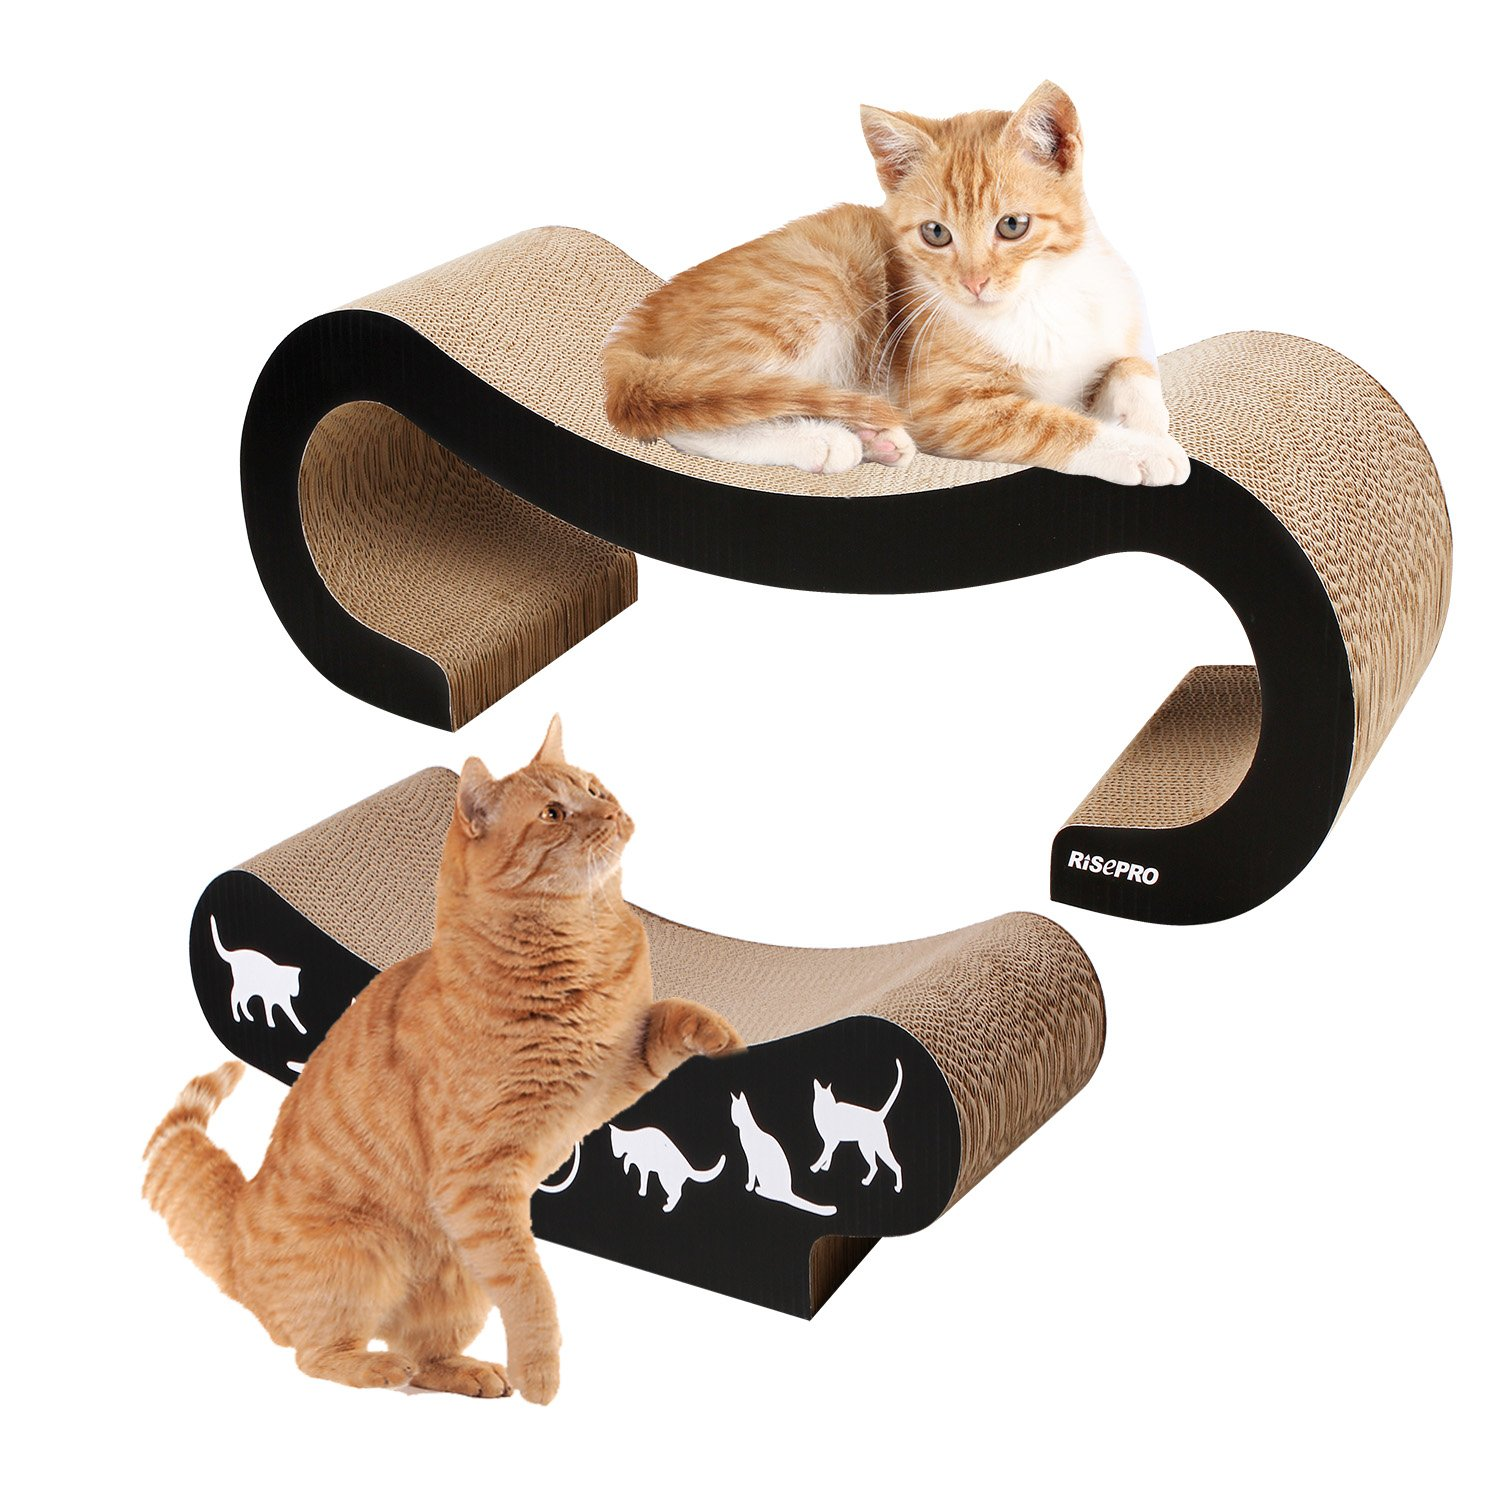 2 in 1 Cat Scratch Board , Large size is 44.5 X 22.8 X 13.3 CM ,Small Scratcher Size :44.5 X 22.8 X 18.2 ,Cutouts to Hide Toys OW-CSB8627-2 RISEPRO